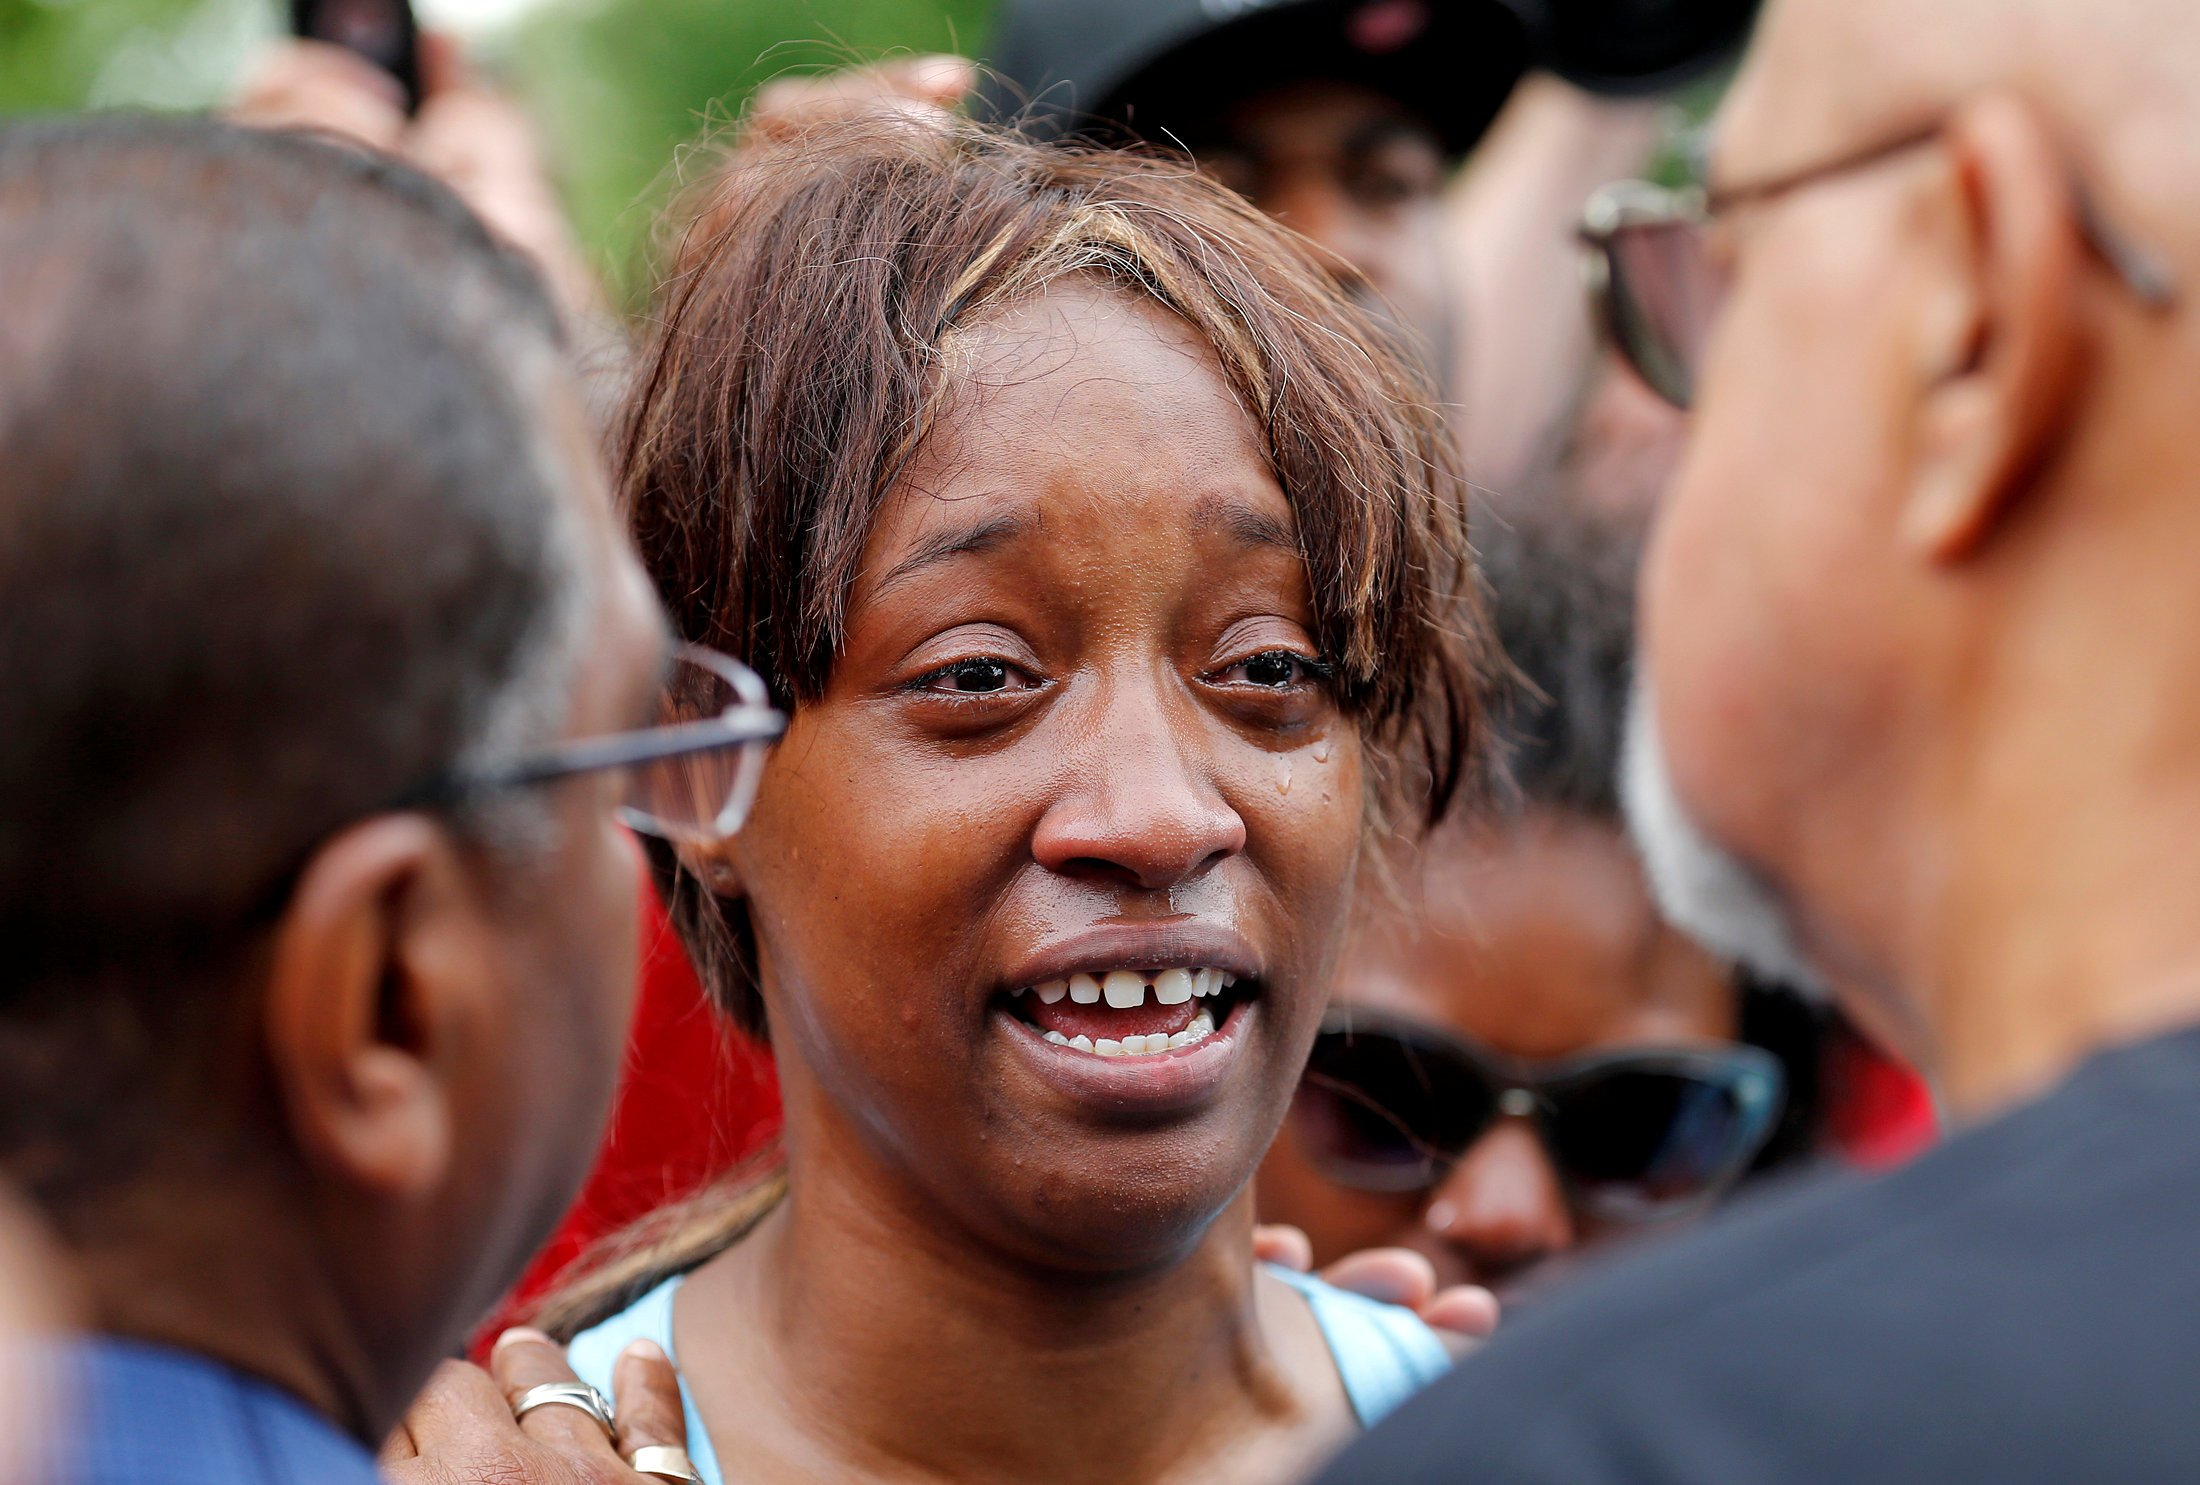 Diamond Reynolds weeps after she recounts the incidents that led to the fatal shooting of her boyfriend Philando Castile by Minneapolis area police during a traffic stop on Wednesday, at a  Black Lives Matter  demonstration in front of the Governor's Mansion in St. Paul, Minn., July 7, 2016.